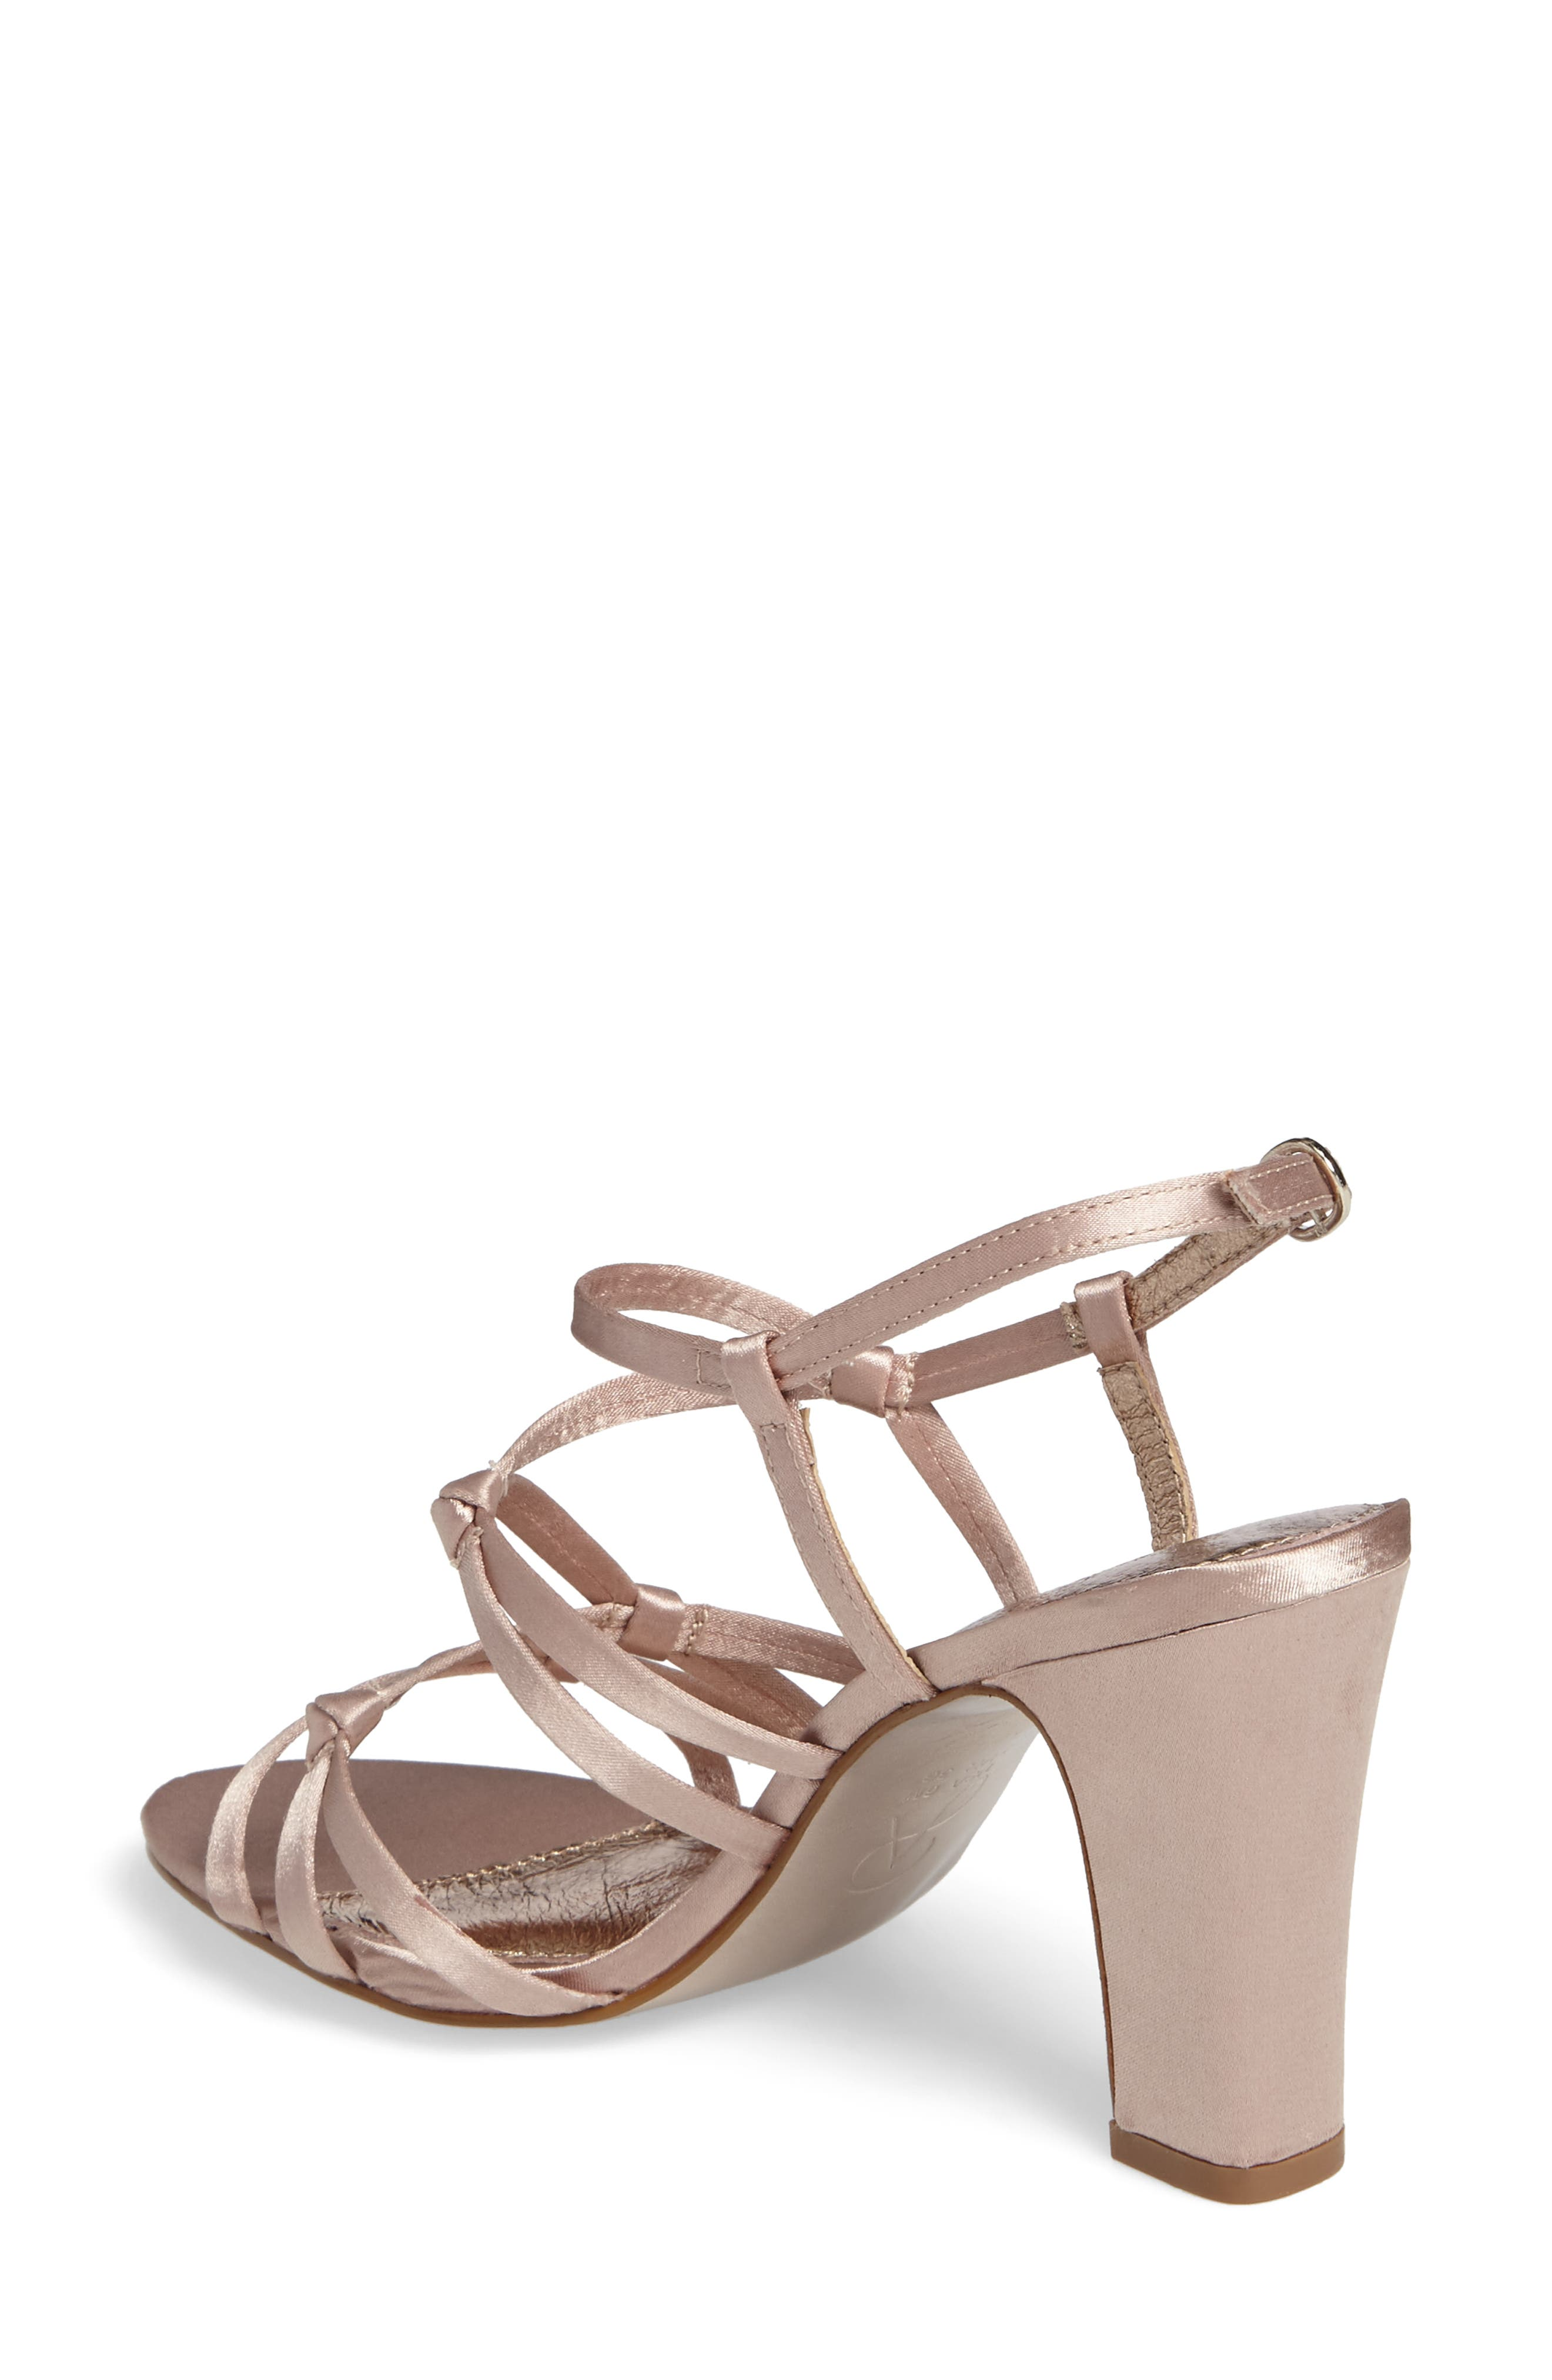 Alternate Image 2  - Adrianna Papell Adelson Knotted Strappy Sandal (Women)